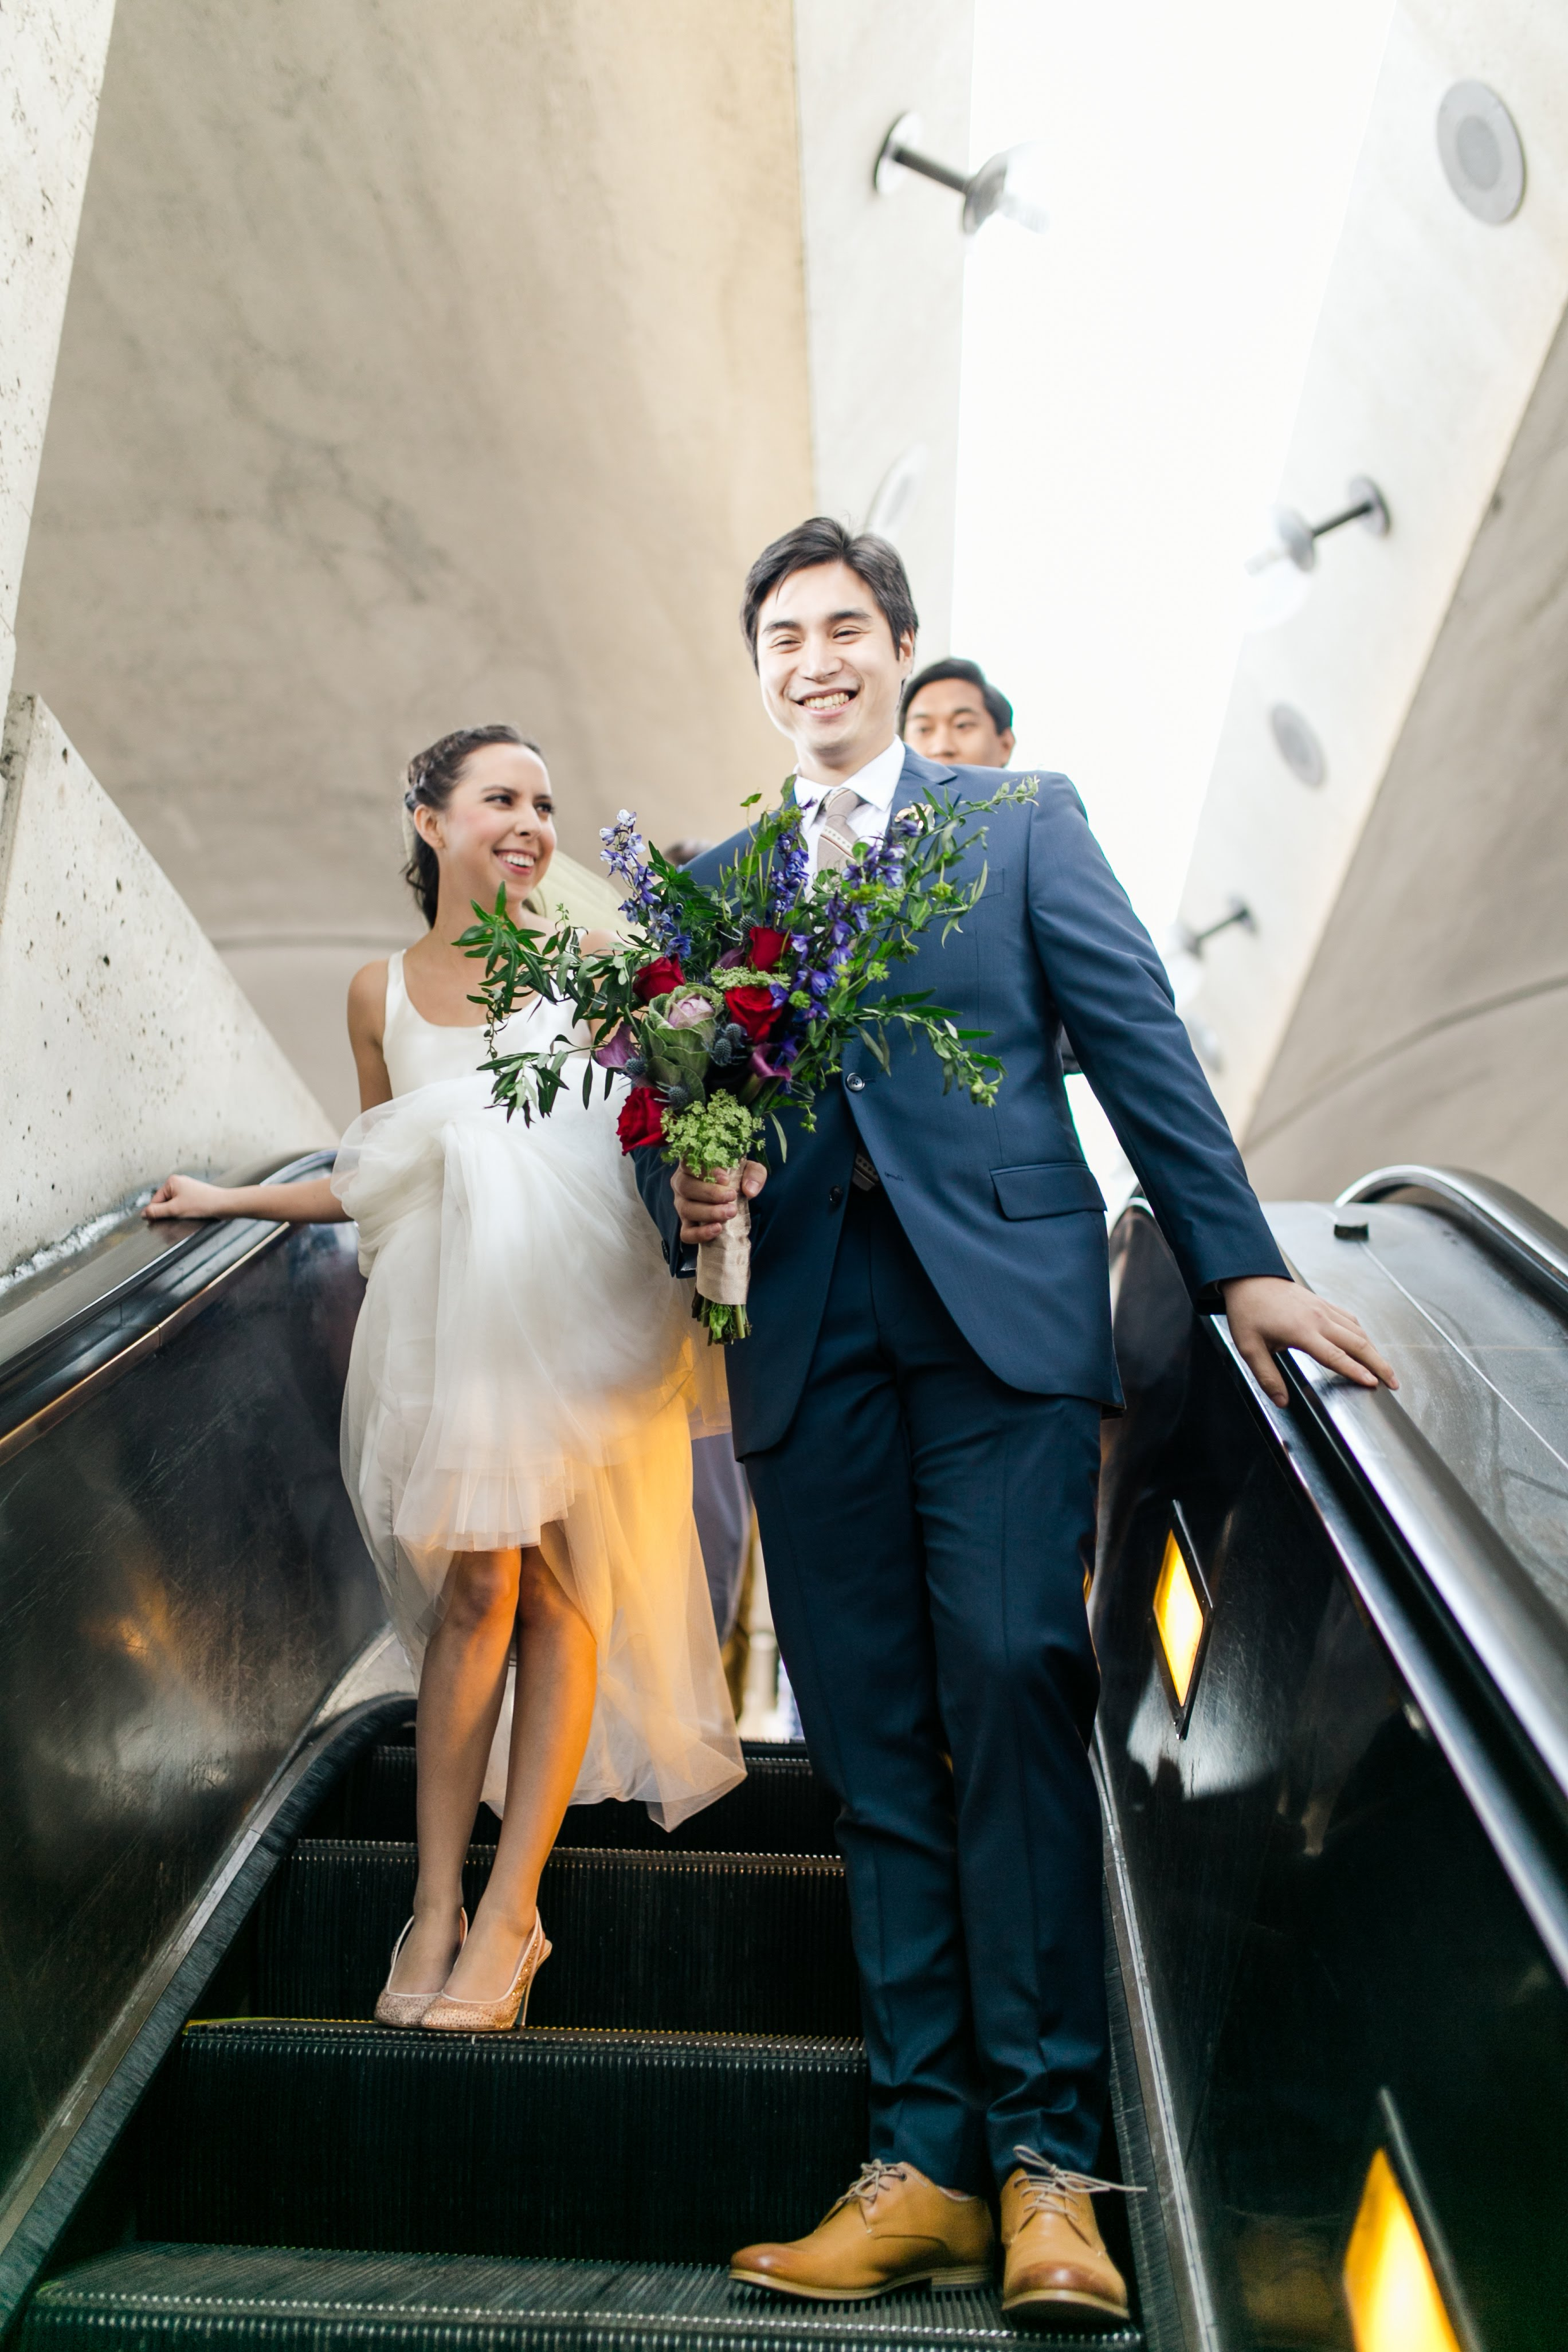 For Stephanie, one of the highlights of her whole wedding day was riding the metro to the wedding.{ } (Image: Brandon C. Photography)